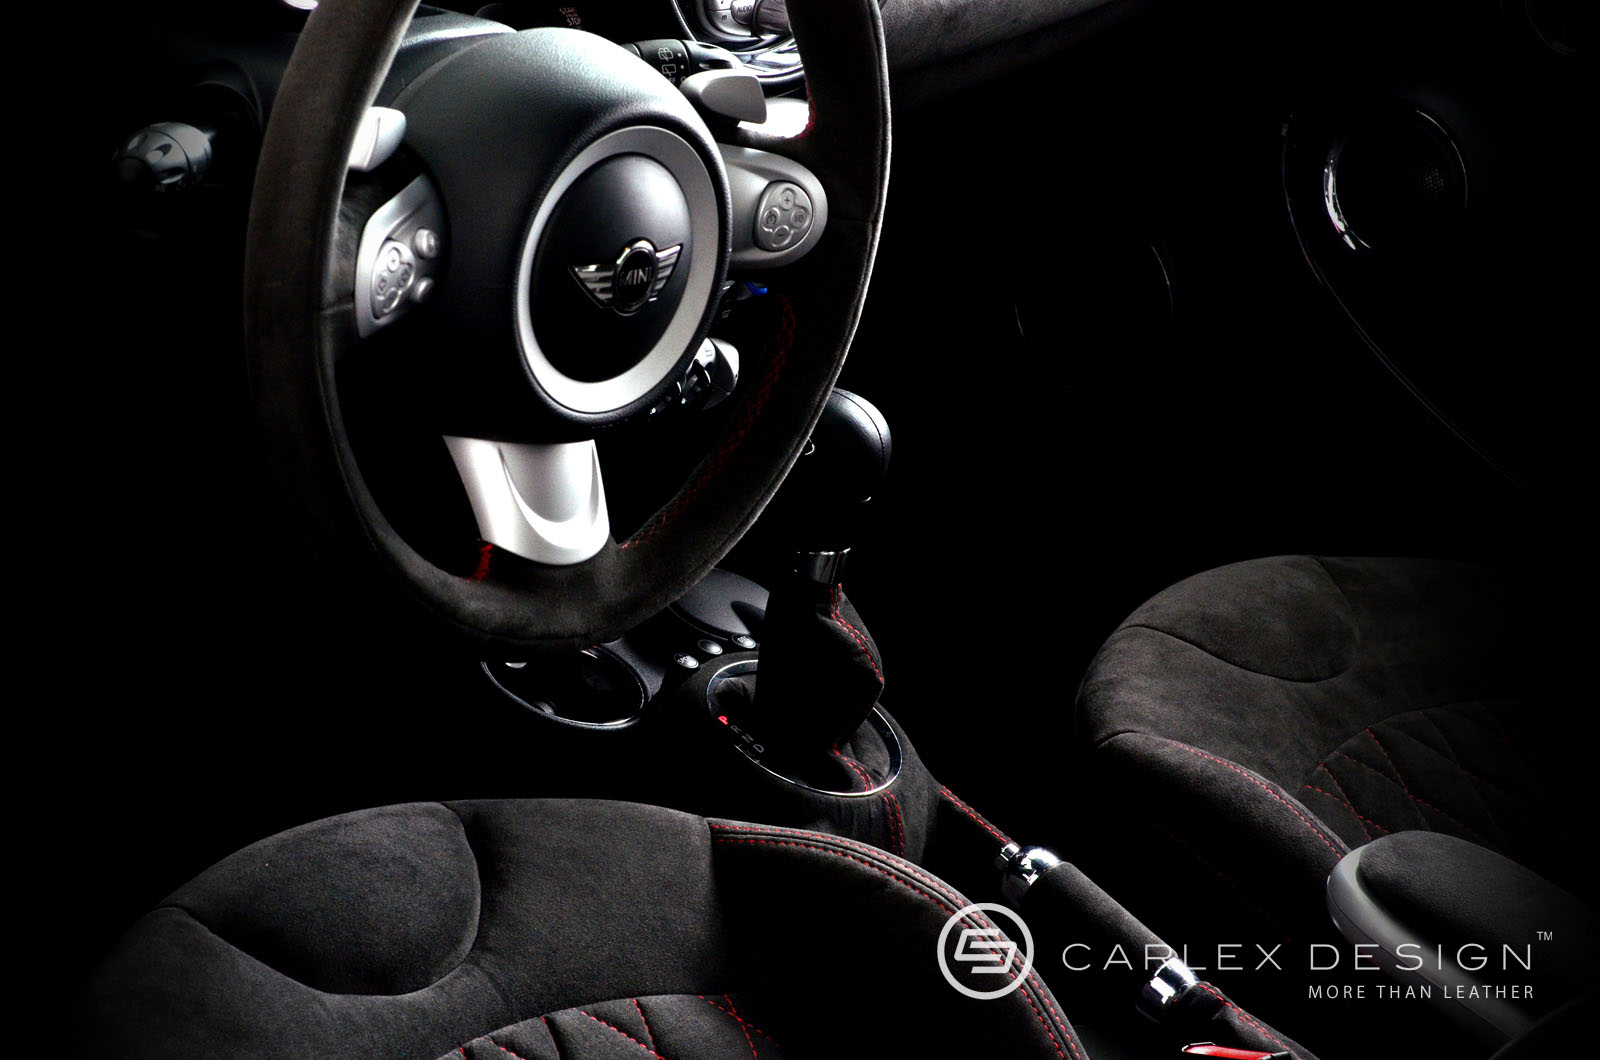 Carlex Design 39 S MINI Cooper S Custom Interior Autoevolution